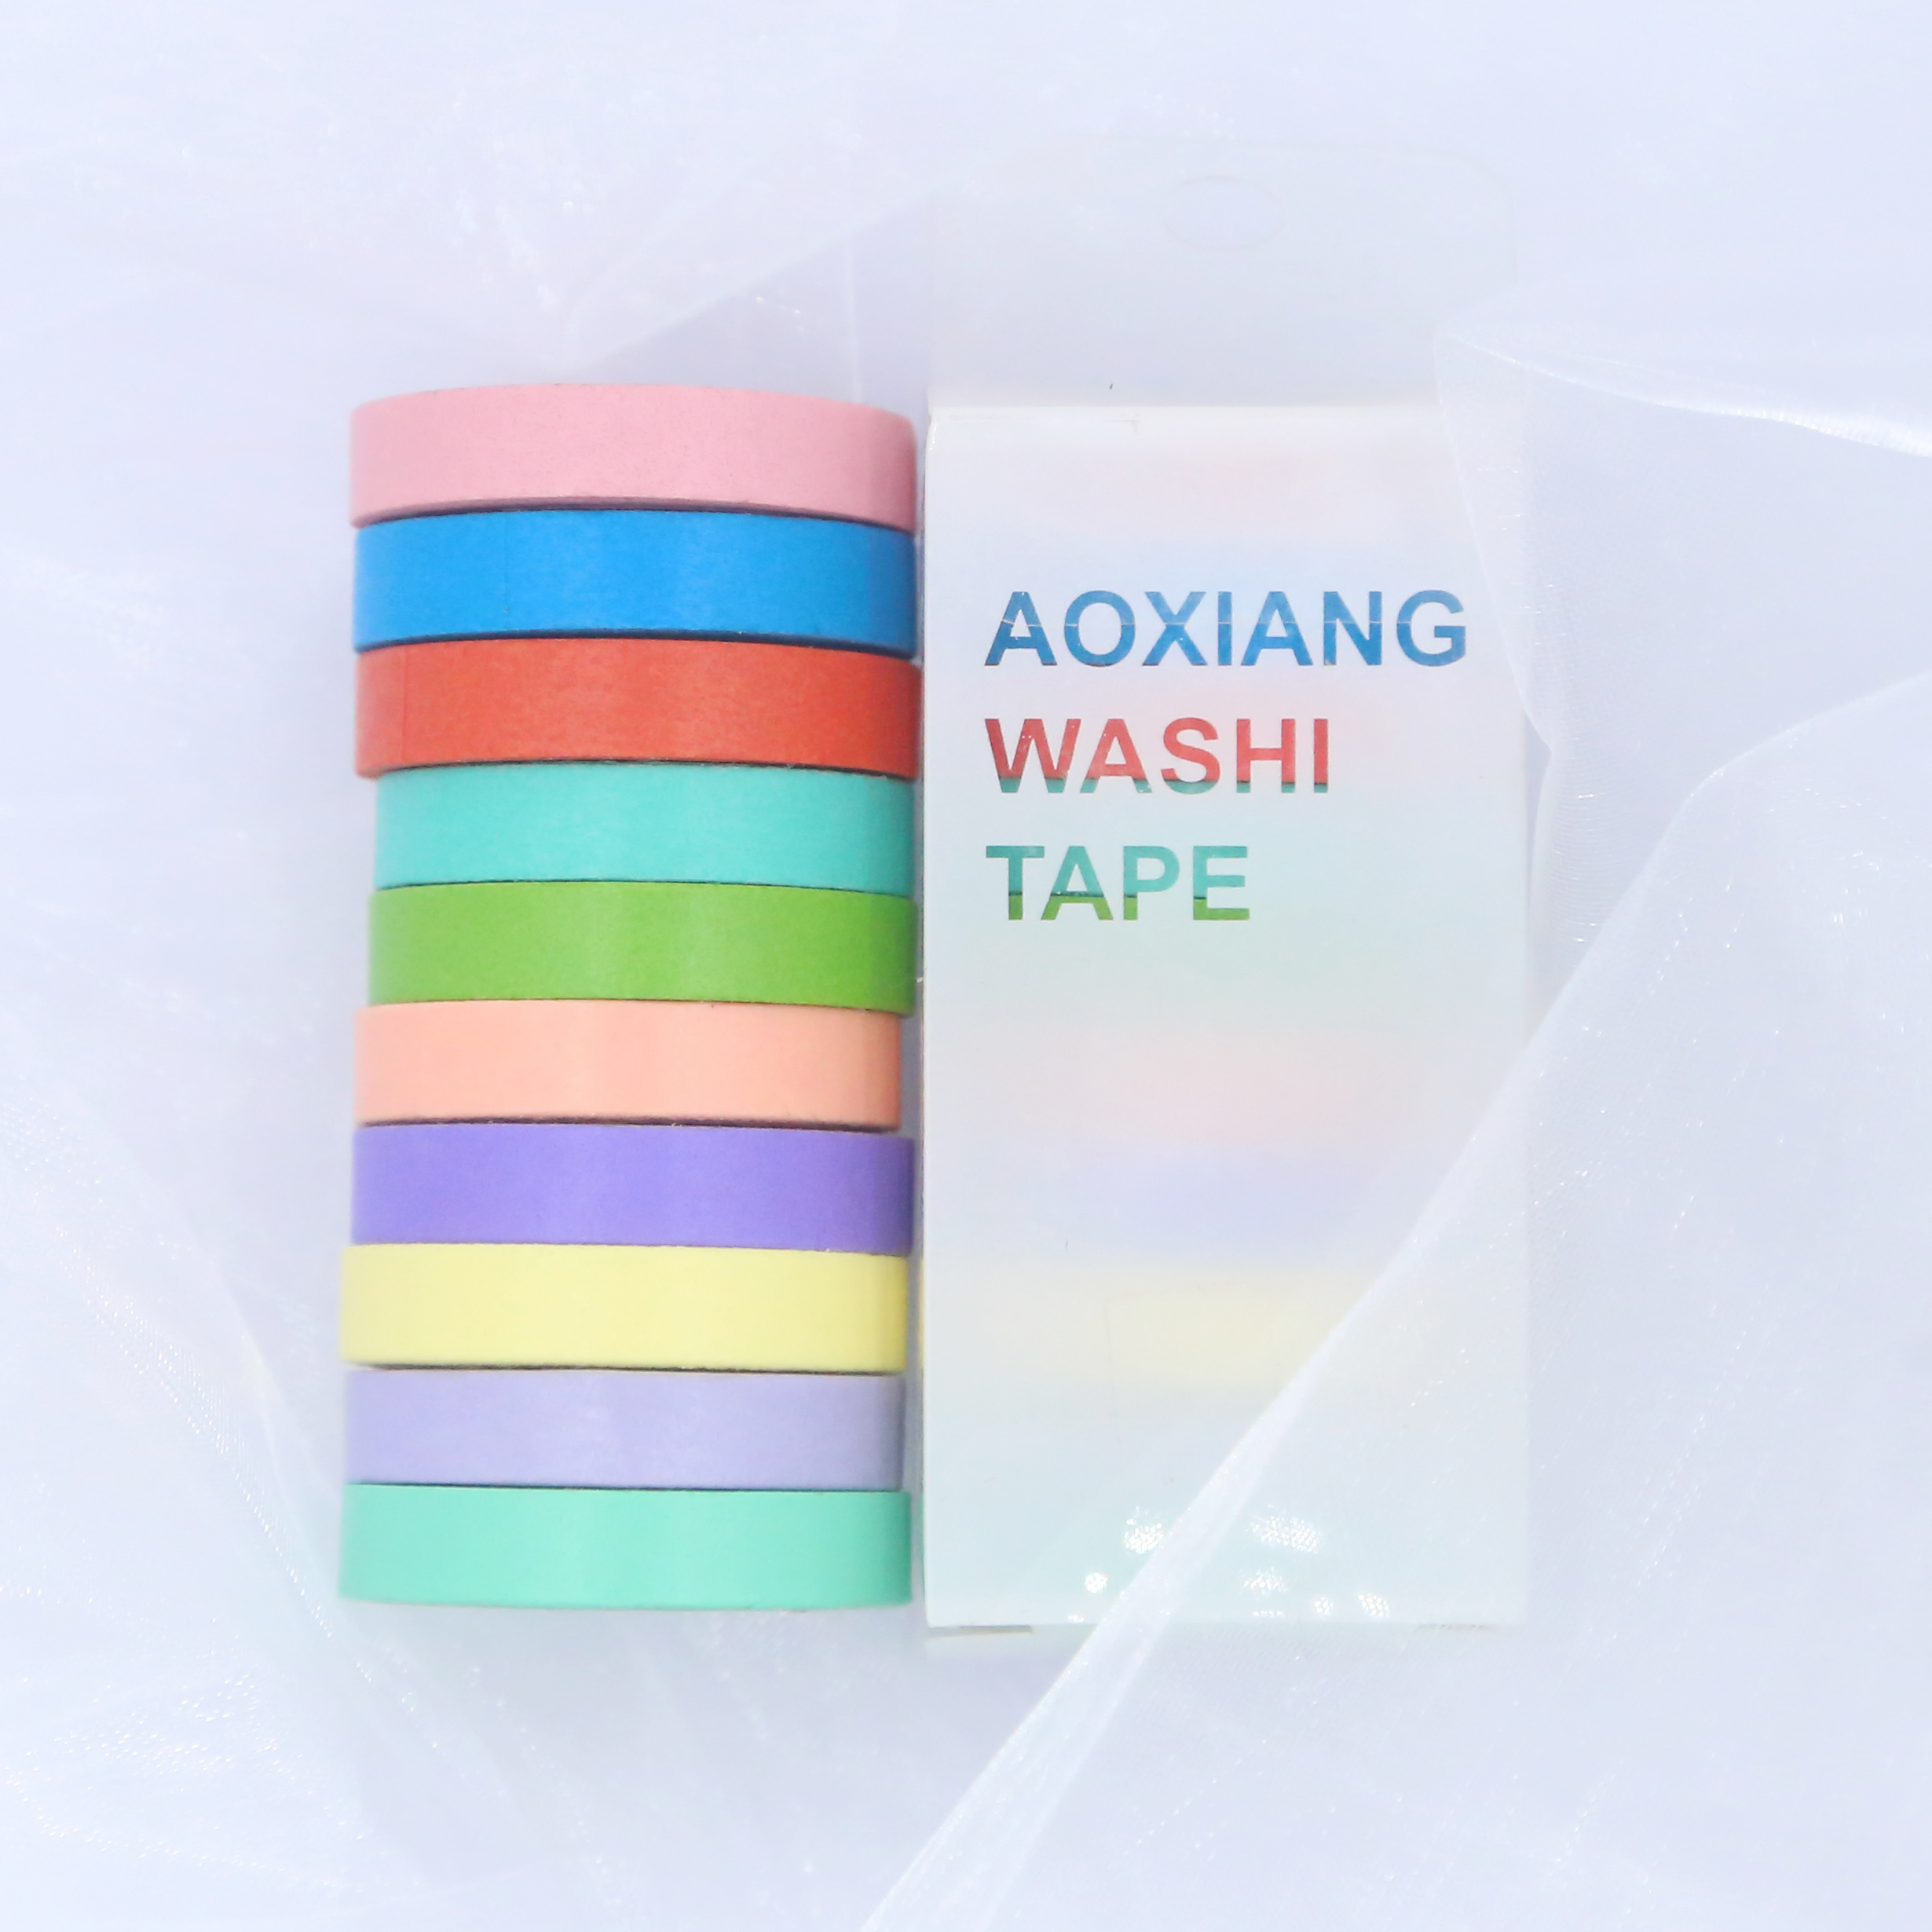 10uds/lot Washi Tape Adhesive Tape Zeal Colors For Album 10 Colors 8mm Amplitude Decoration